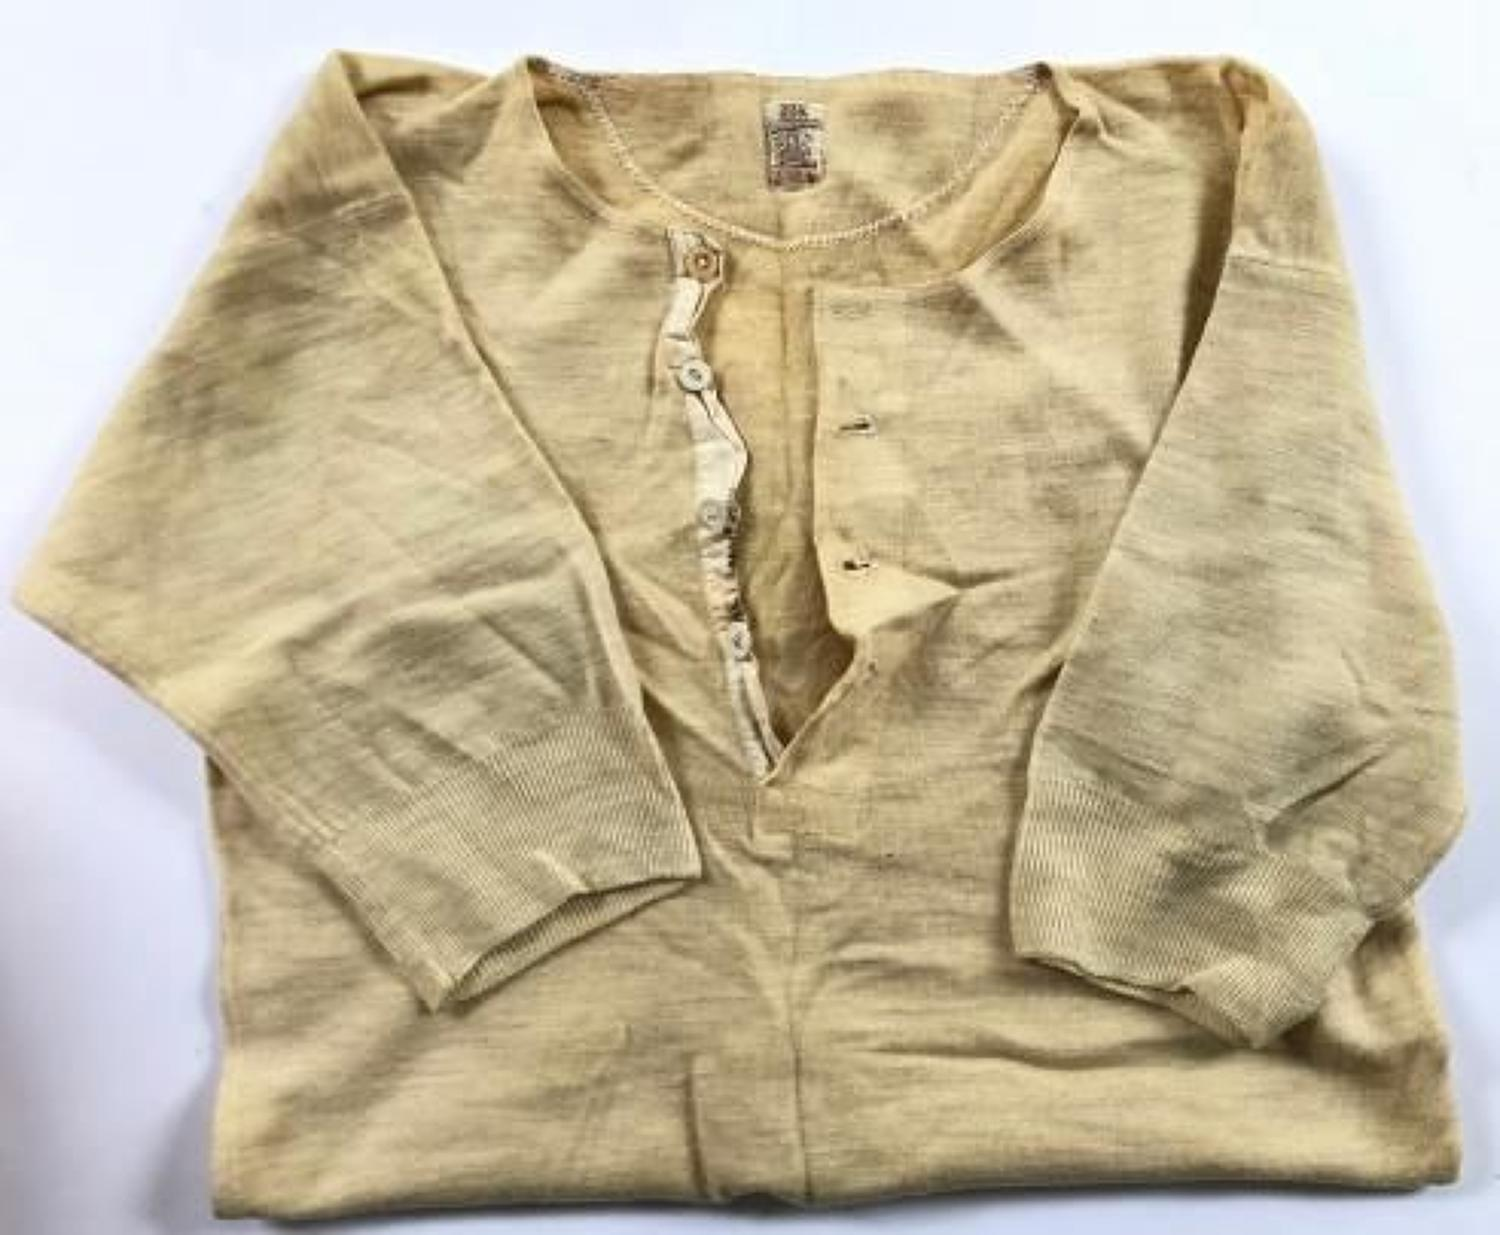 WW1 / WW2 Pattern Officer's Private Purchase Vest.